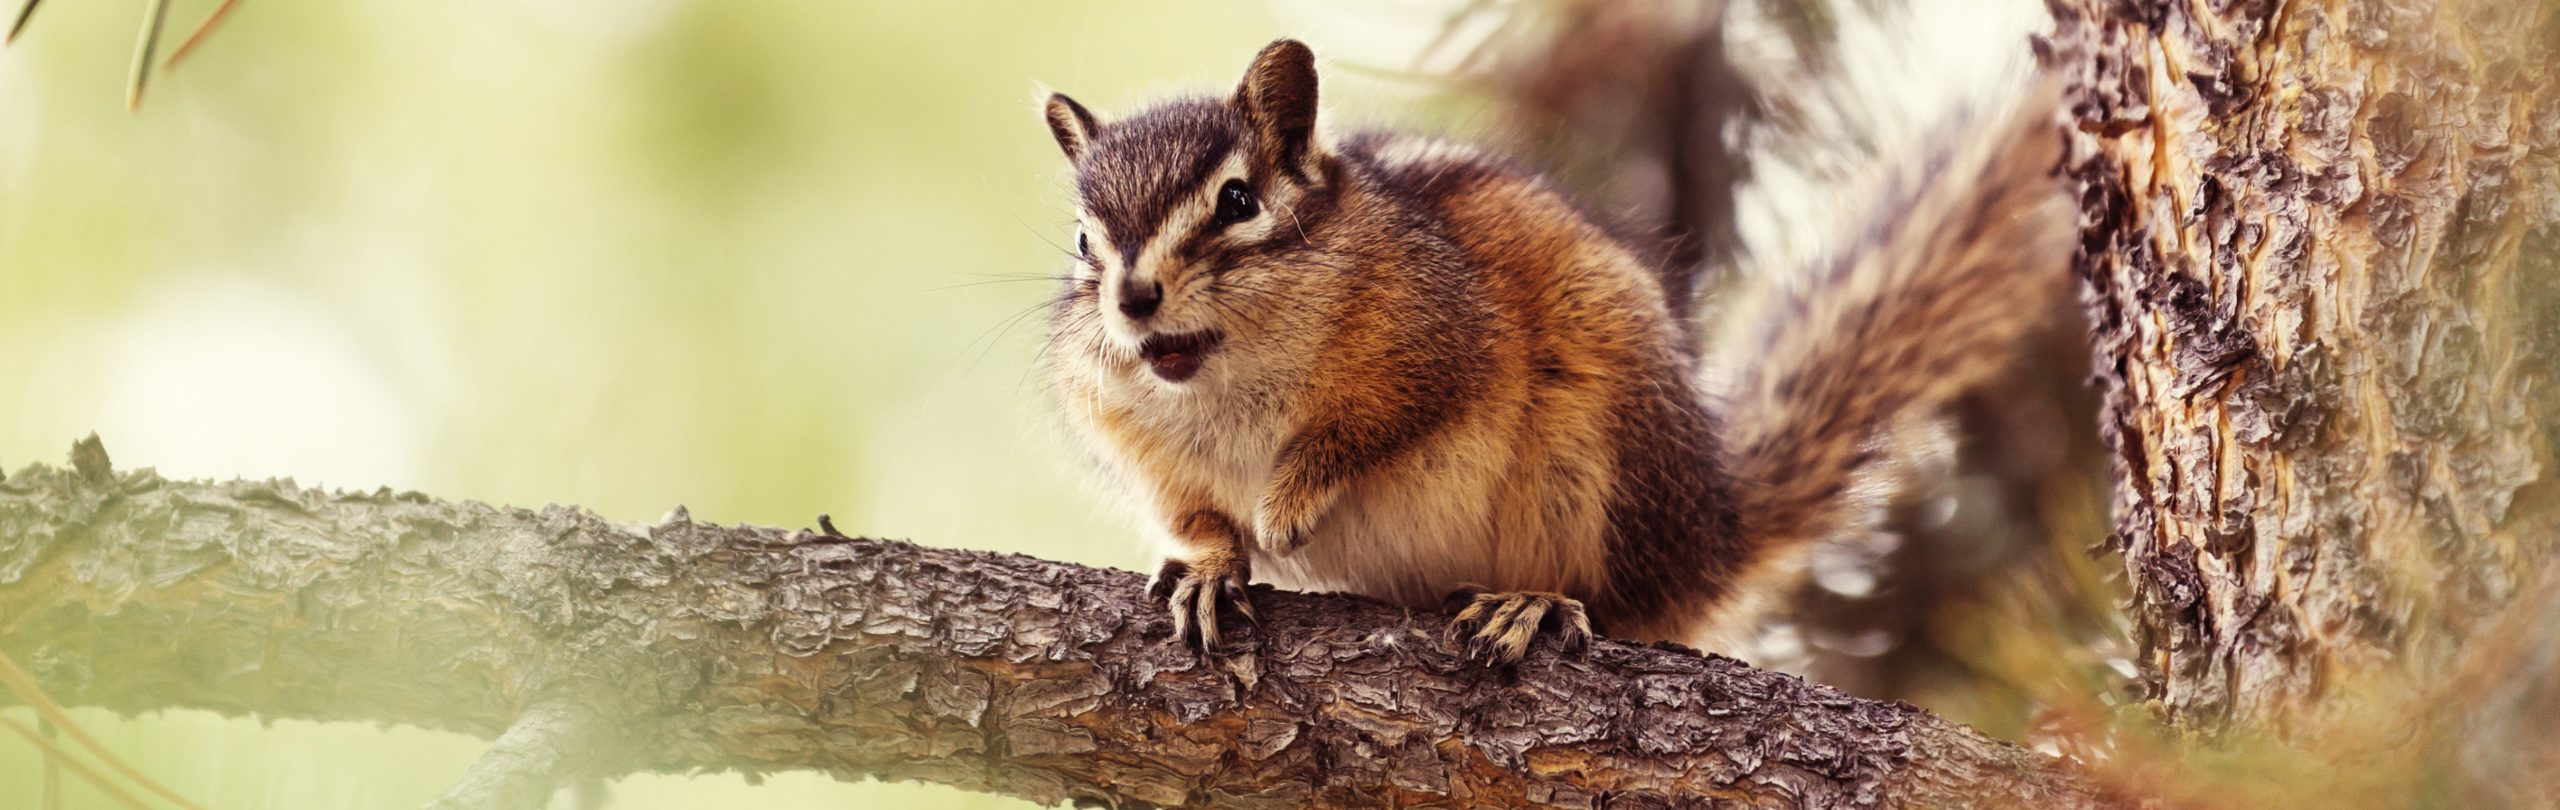 Image of chipmunk in Michigan forest